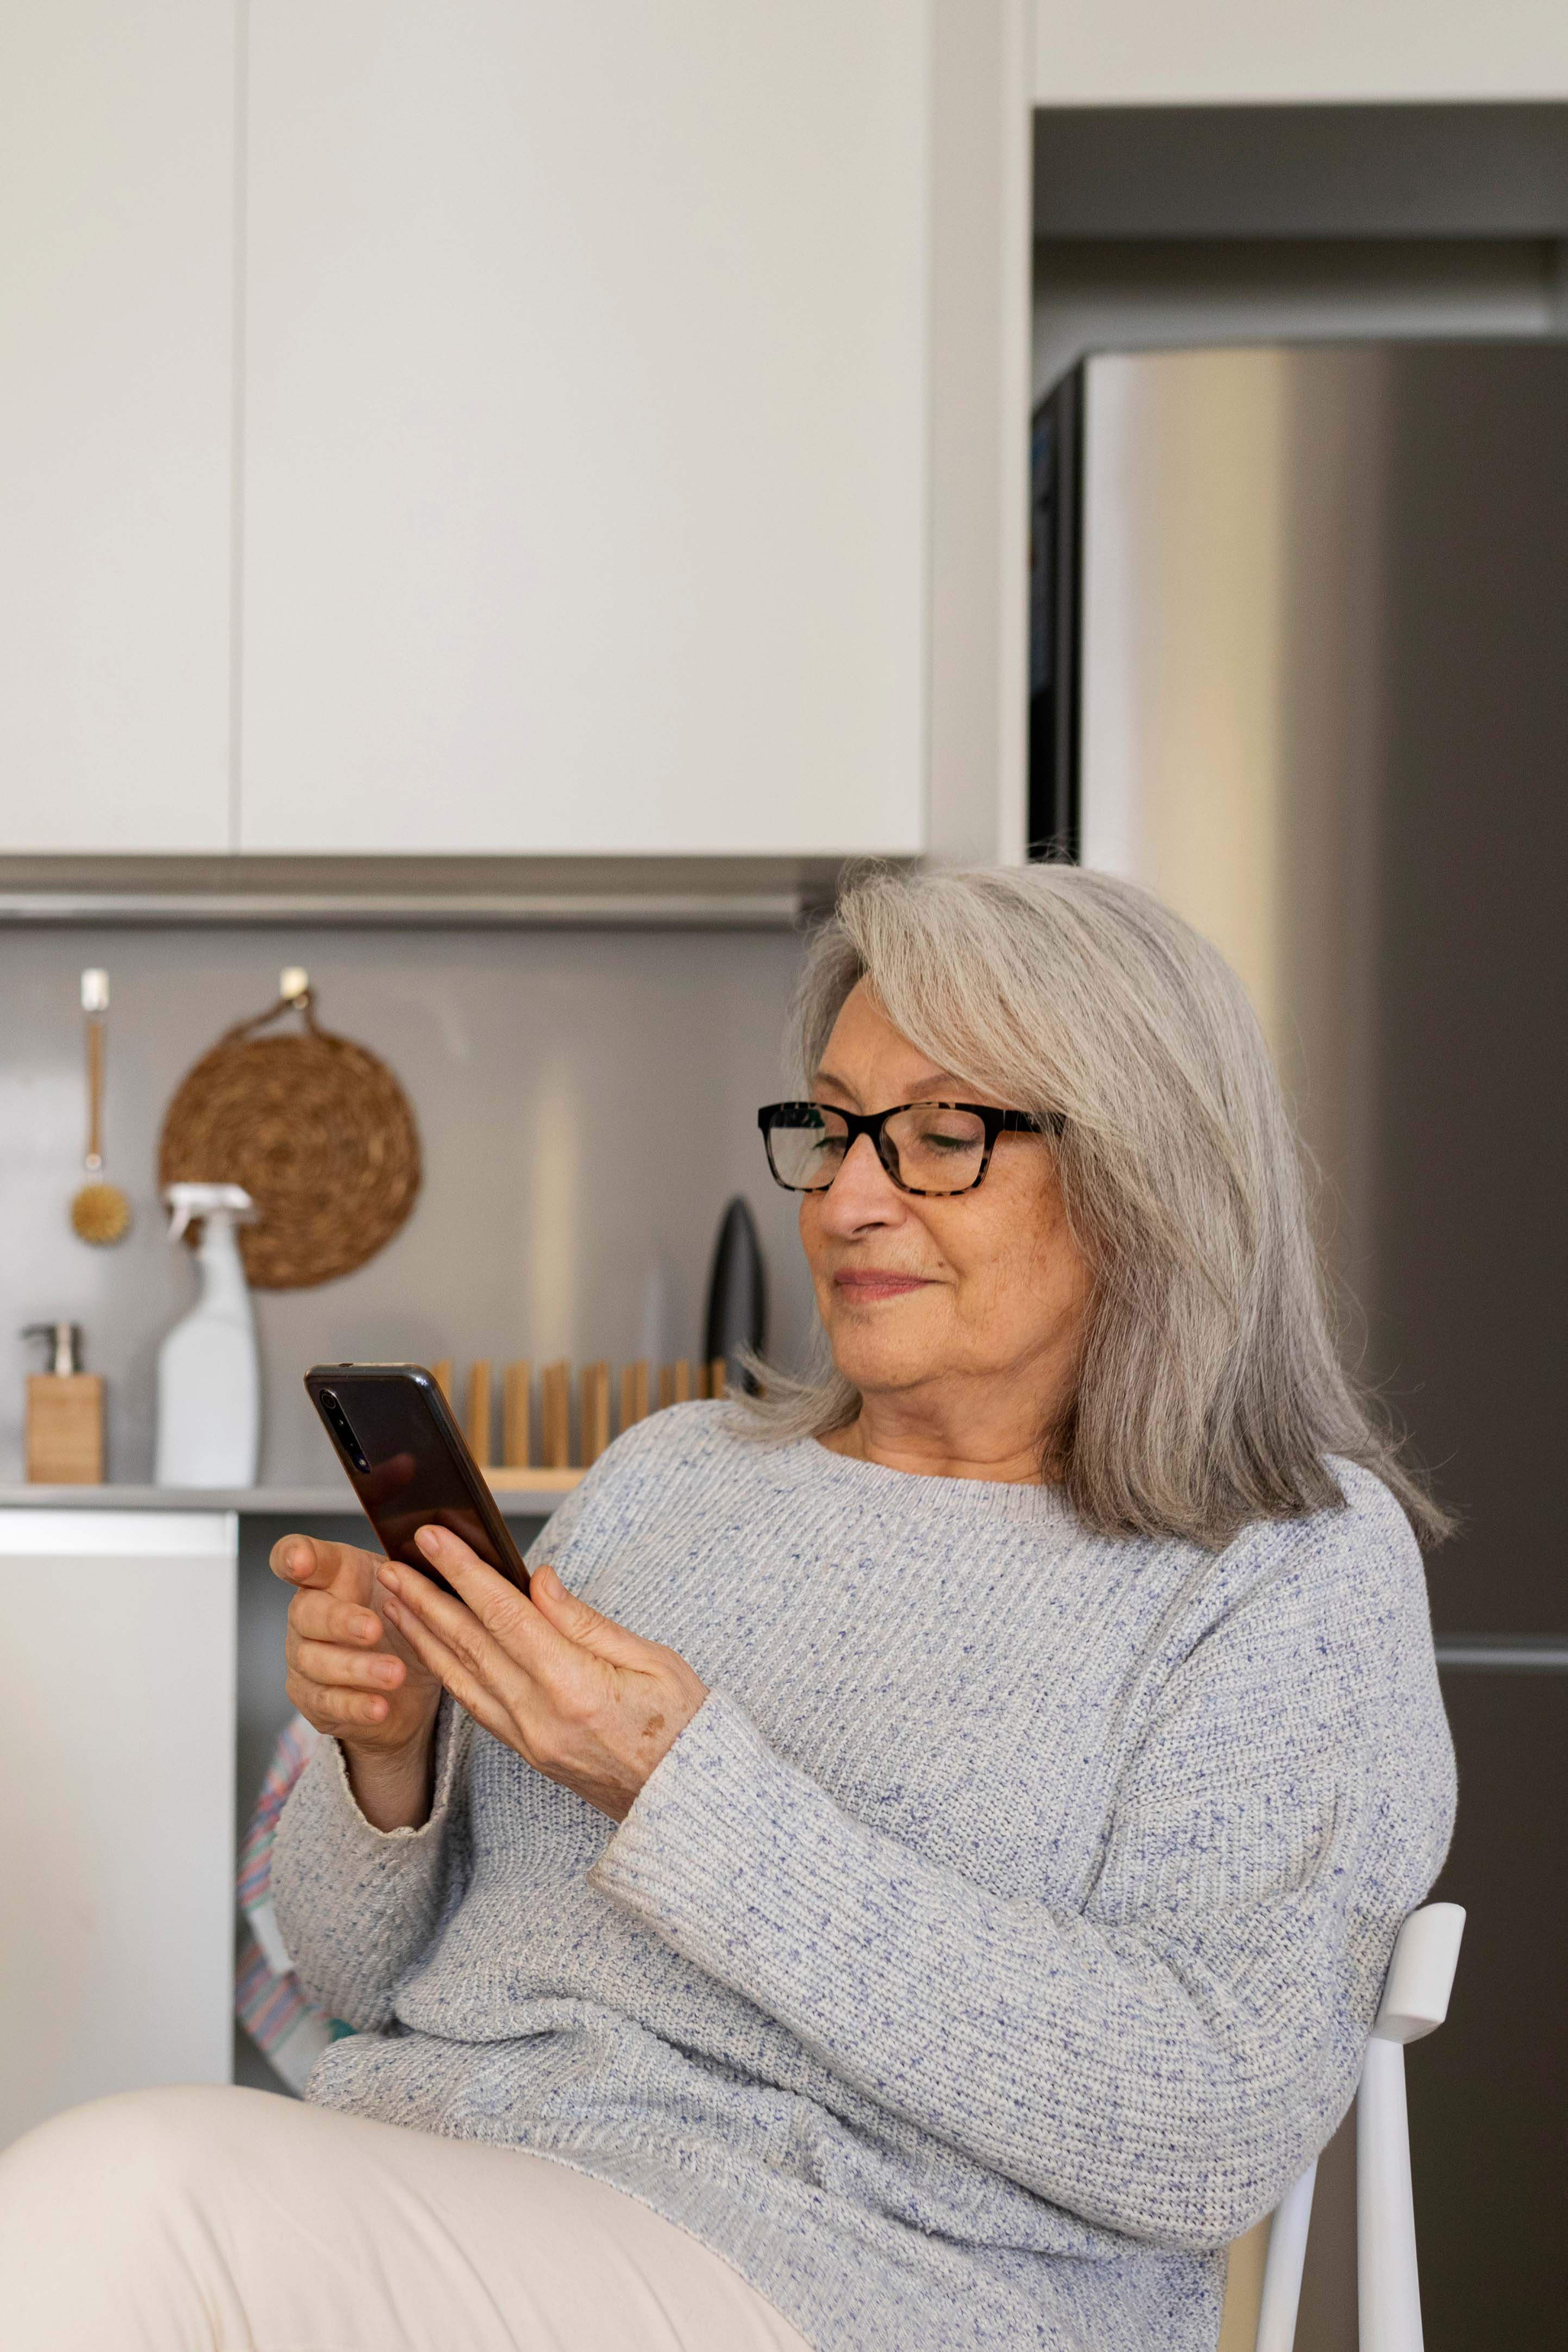 A woman is seated in her kitchen looking at her phone